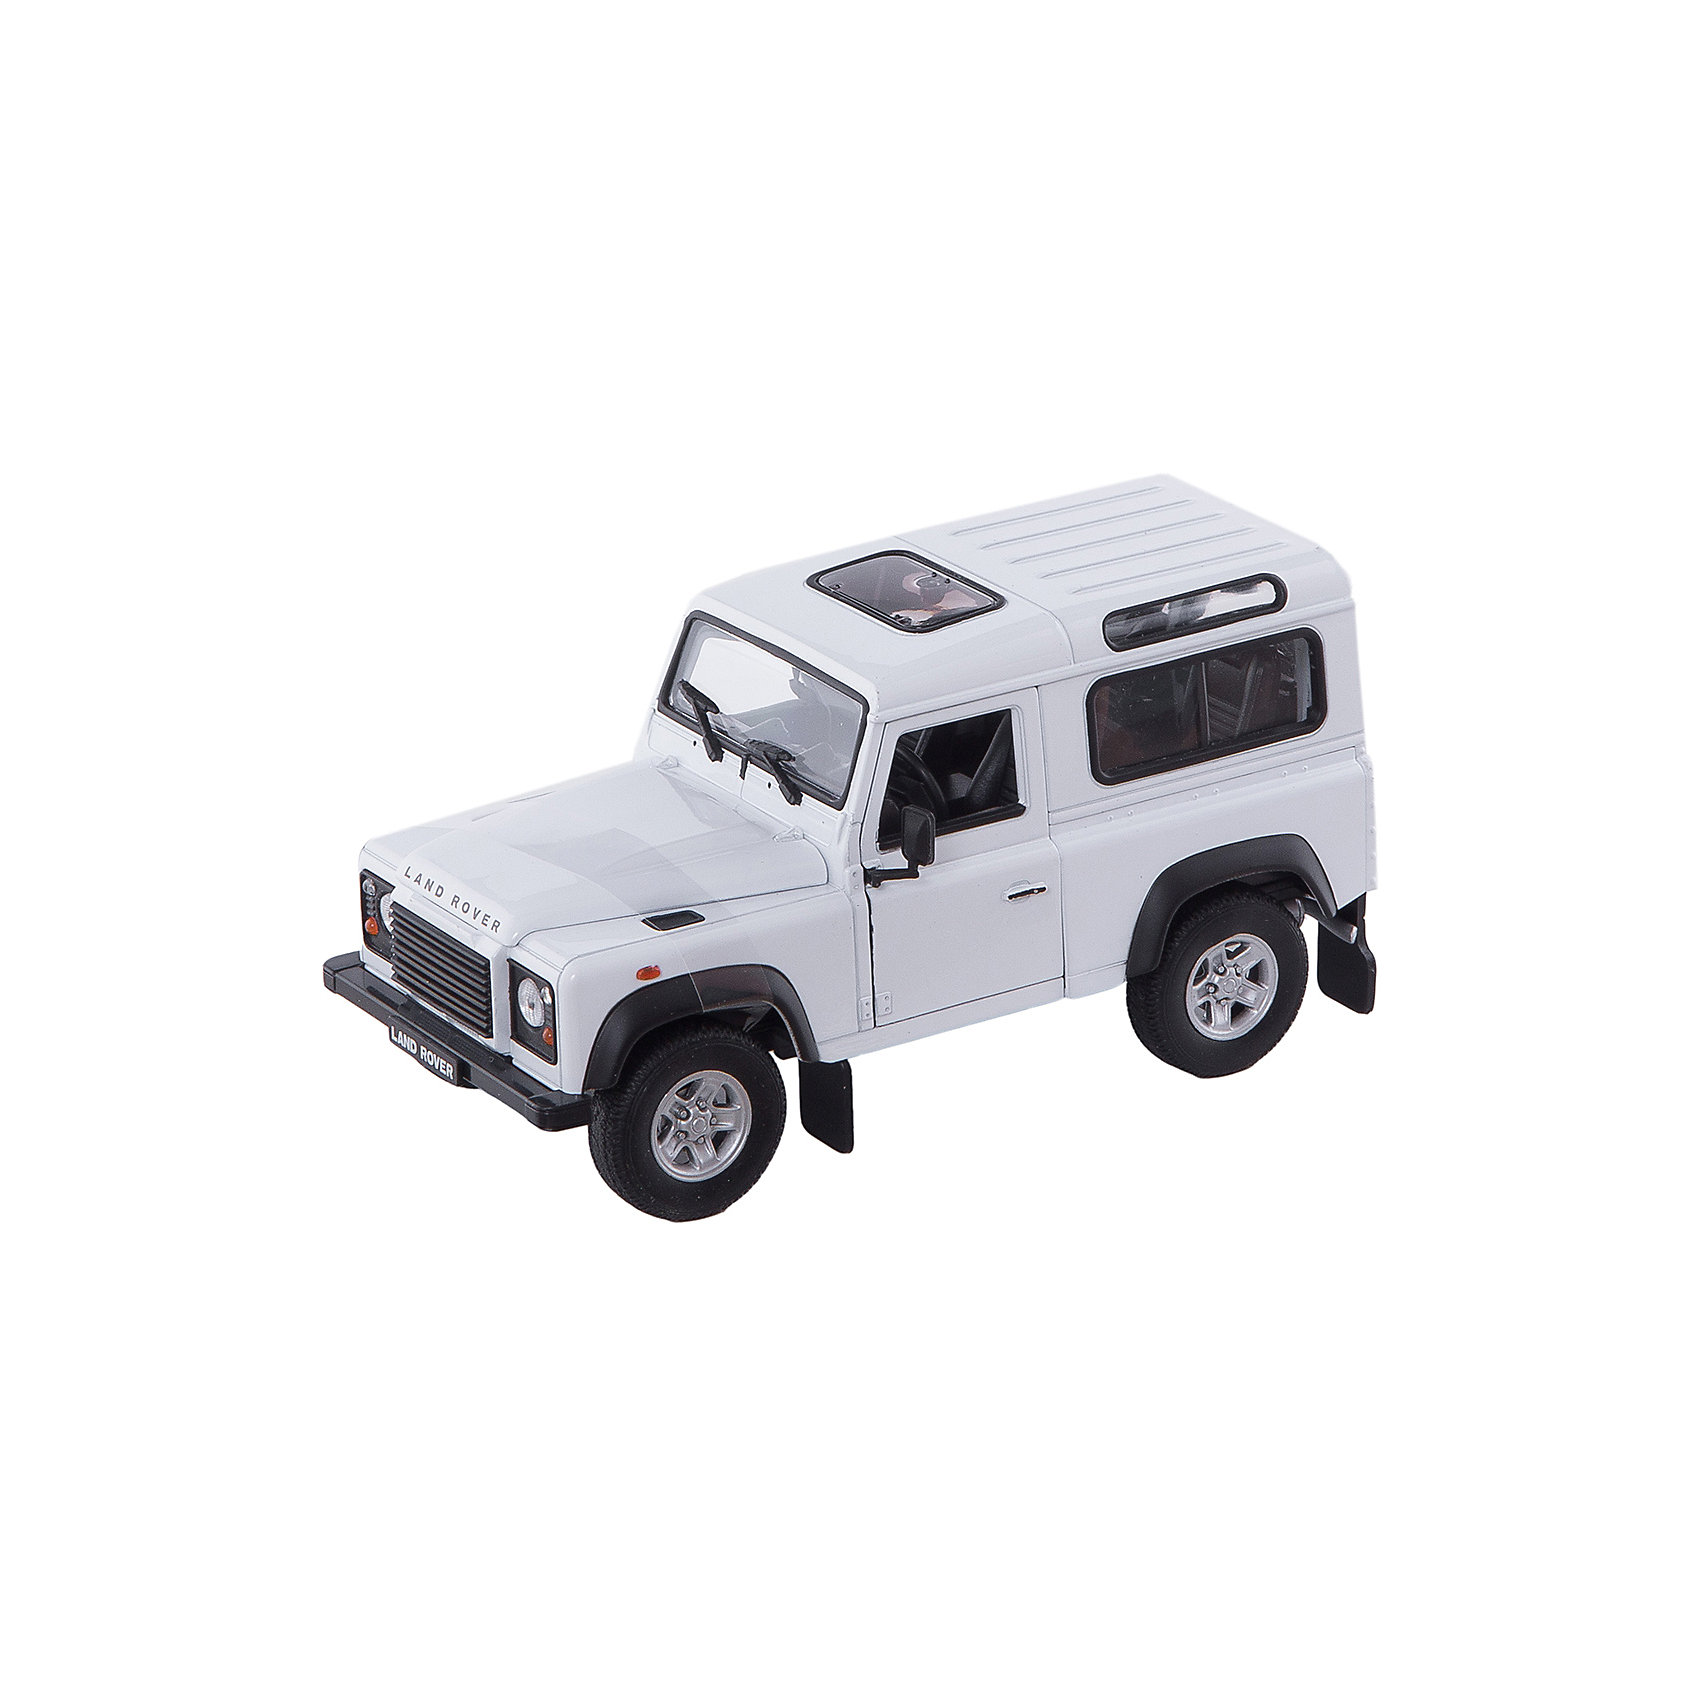 Welly Welly Модель машины 1:24 Land Rover Defender электромобили dongma land rover defender